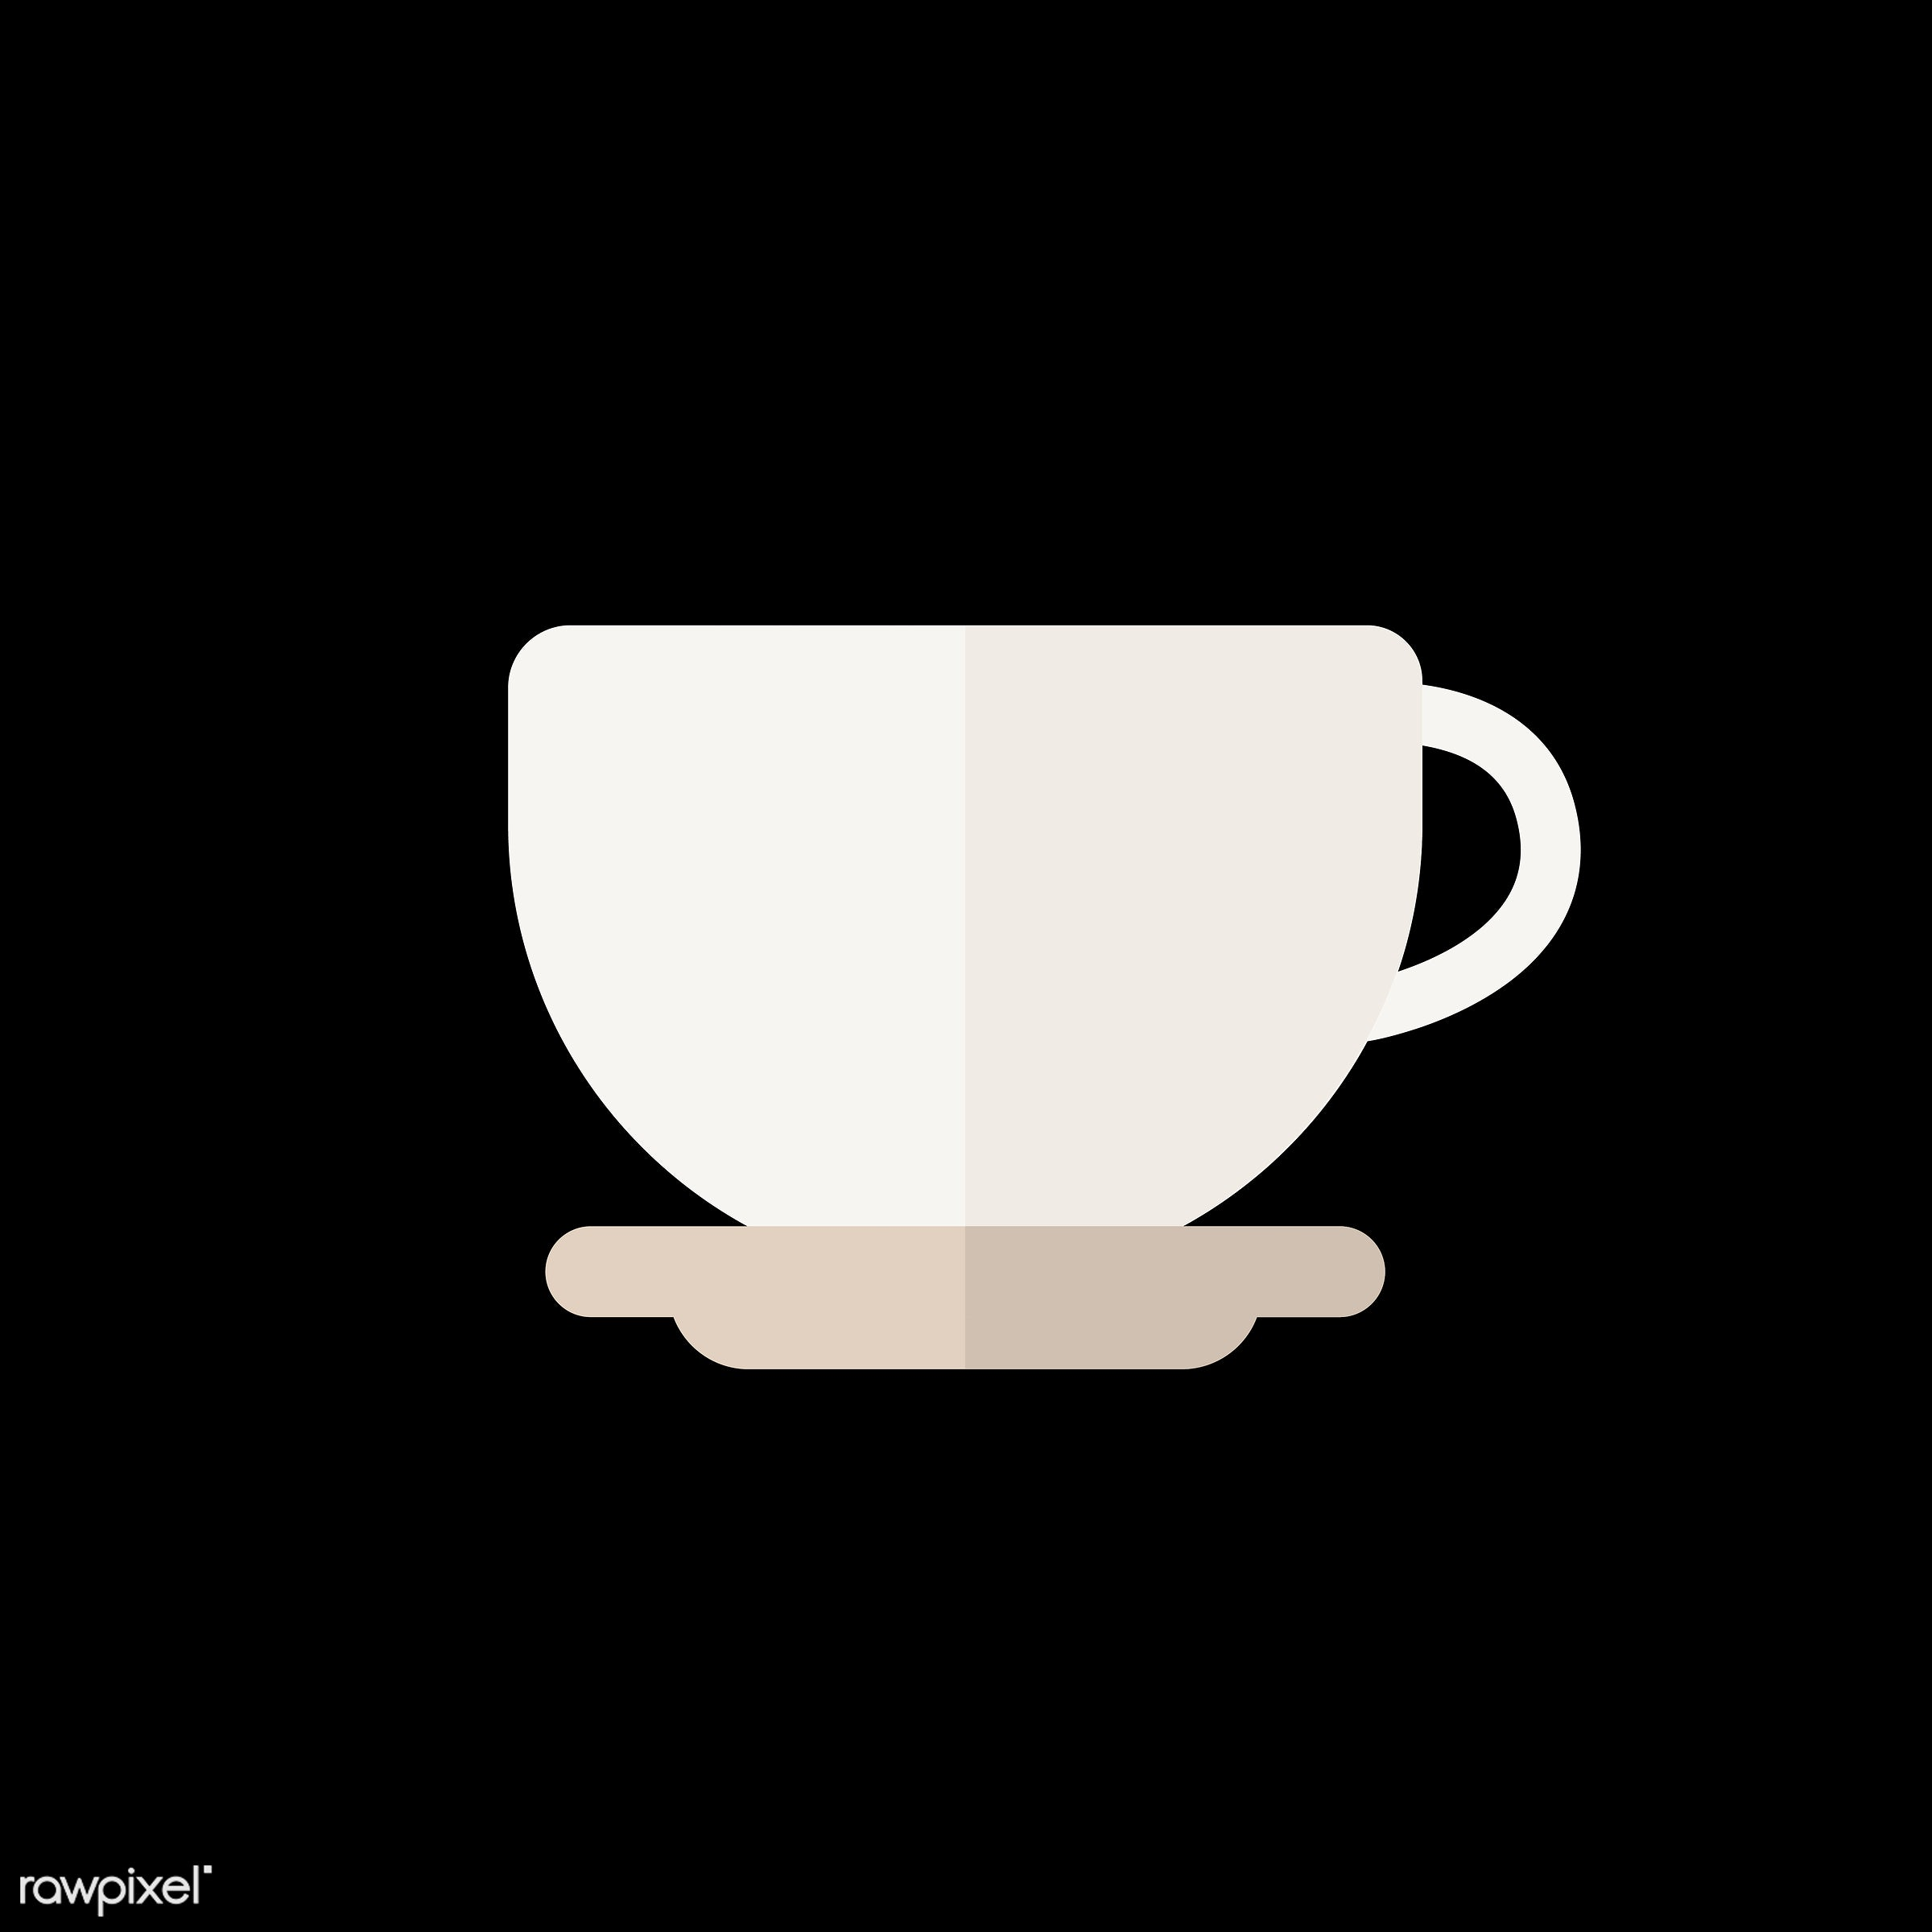 vector, graphic, illustration, icon, symbol, colorful, cute, drink, beverage, water, coffee, coffee cup, coffee mug, tea,...